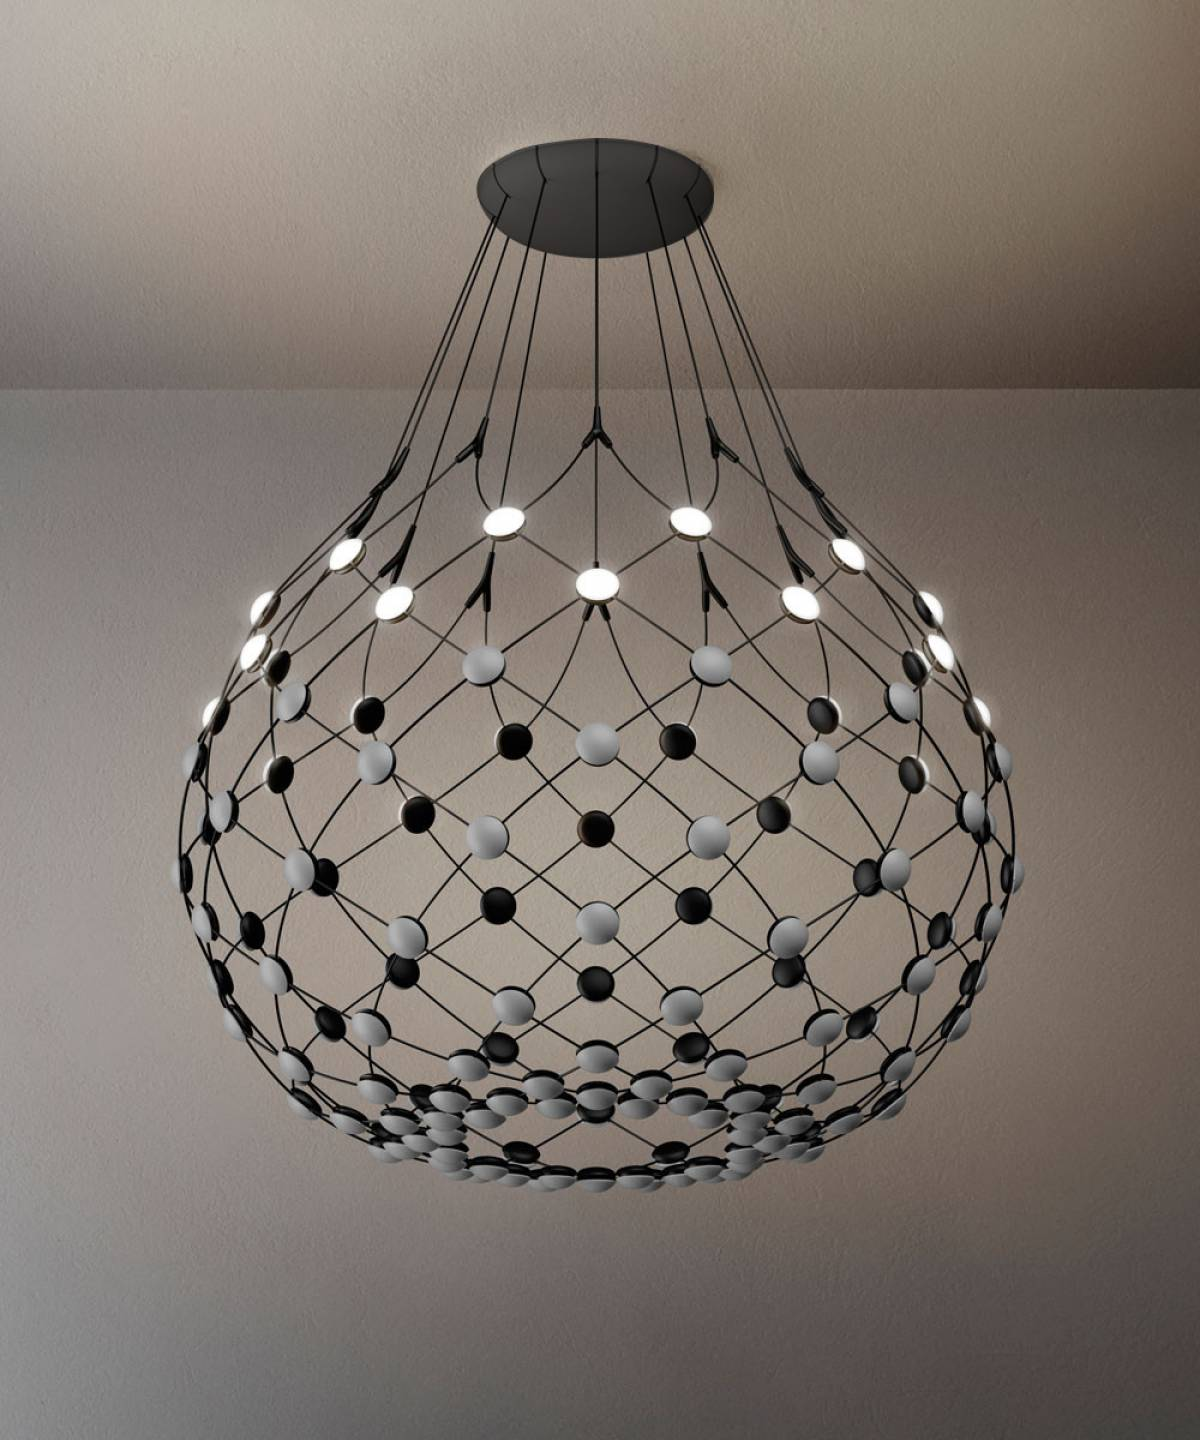 4 Mesh suspension lamp Luceplan